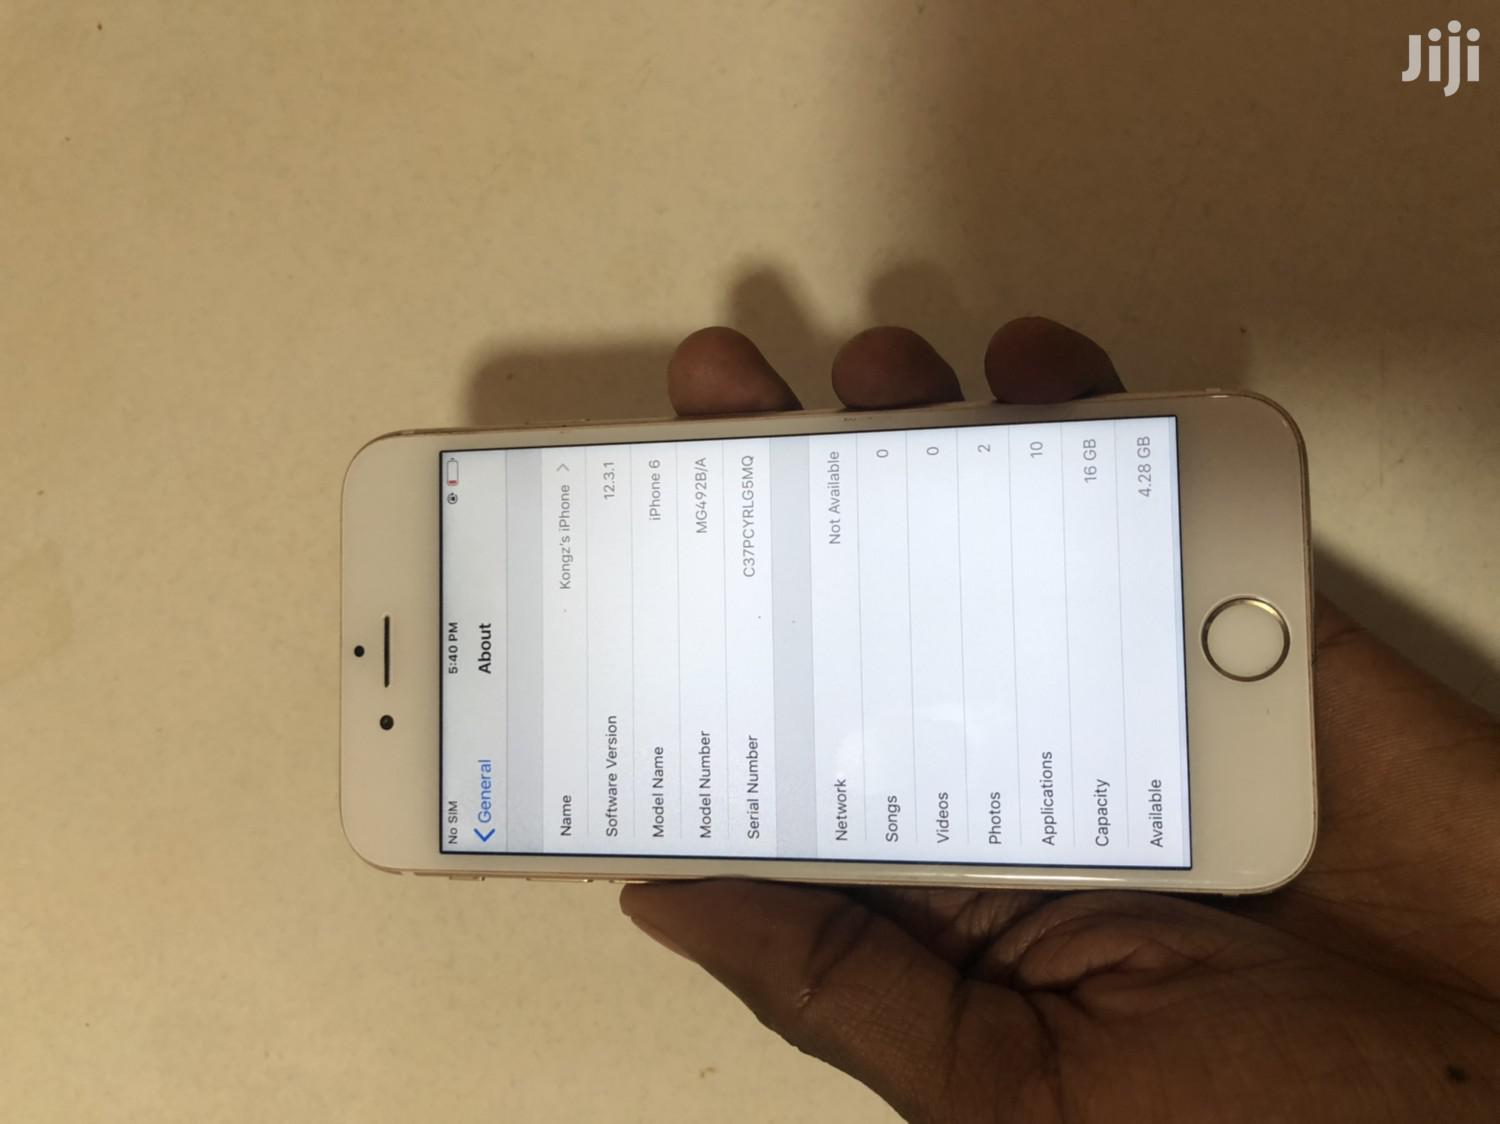 Apple iPhone 6 16 GB Gold | Mobile Phones for sale in Kampala, Central Region, Uganda